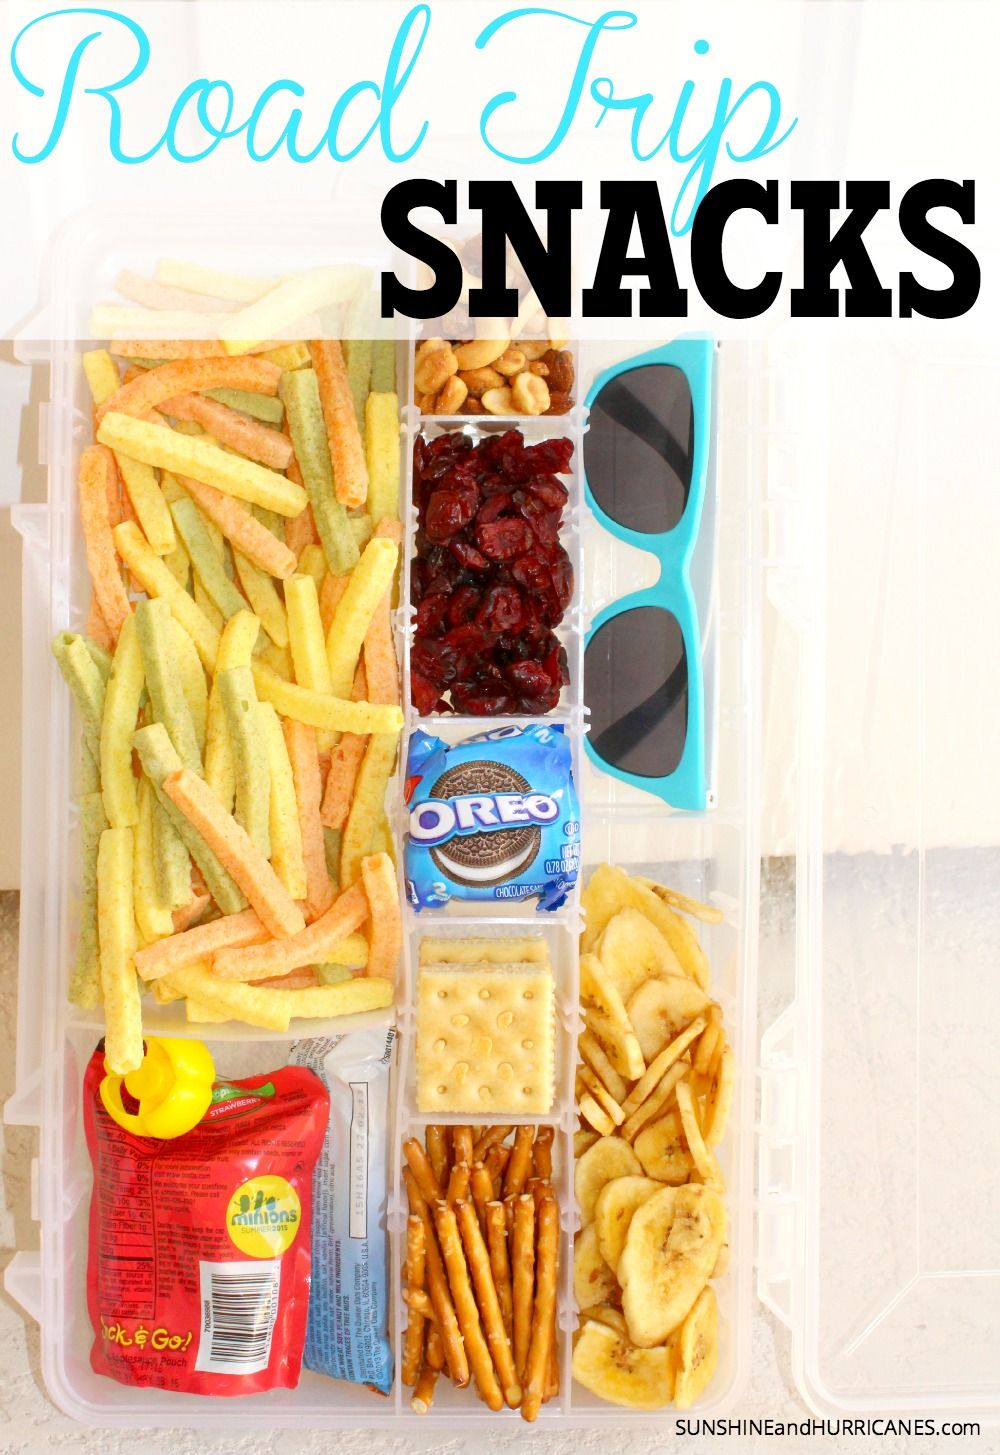 Looking for a super easy and mess free way to carry snacks on a road trip with kids? These cute little dollar store containers can be filled with all your favorites and packed for stress free on the go snacks. Road Trip Snacks. SunshineandHurricanes.com